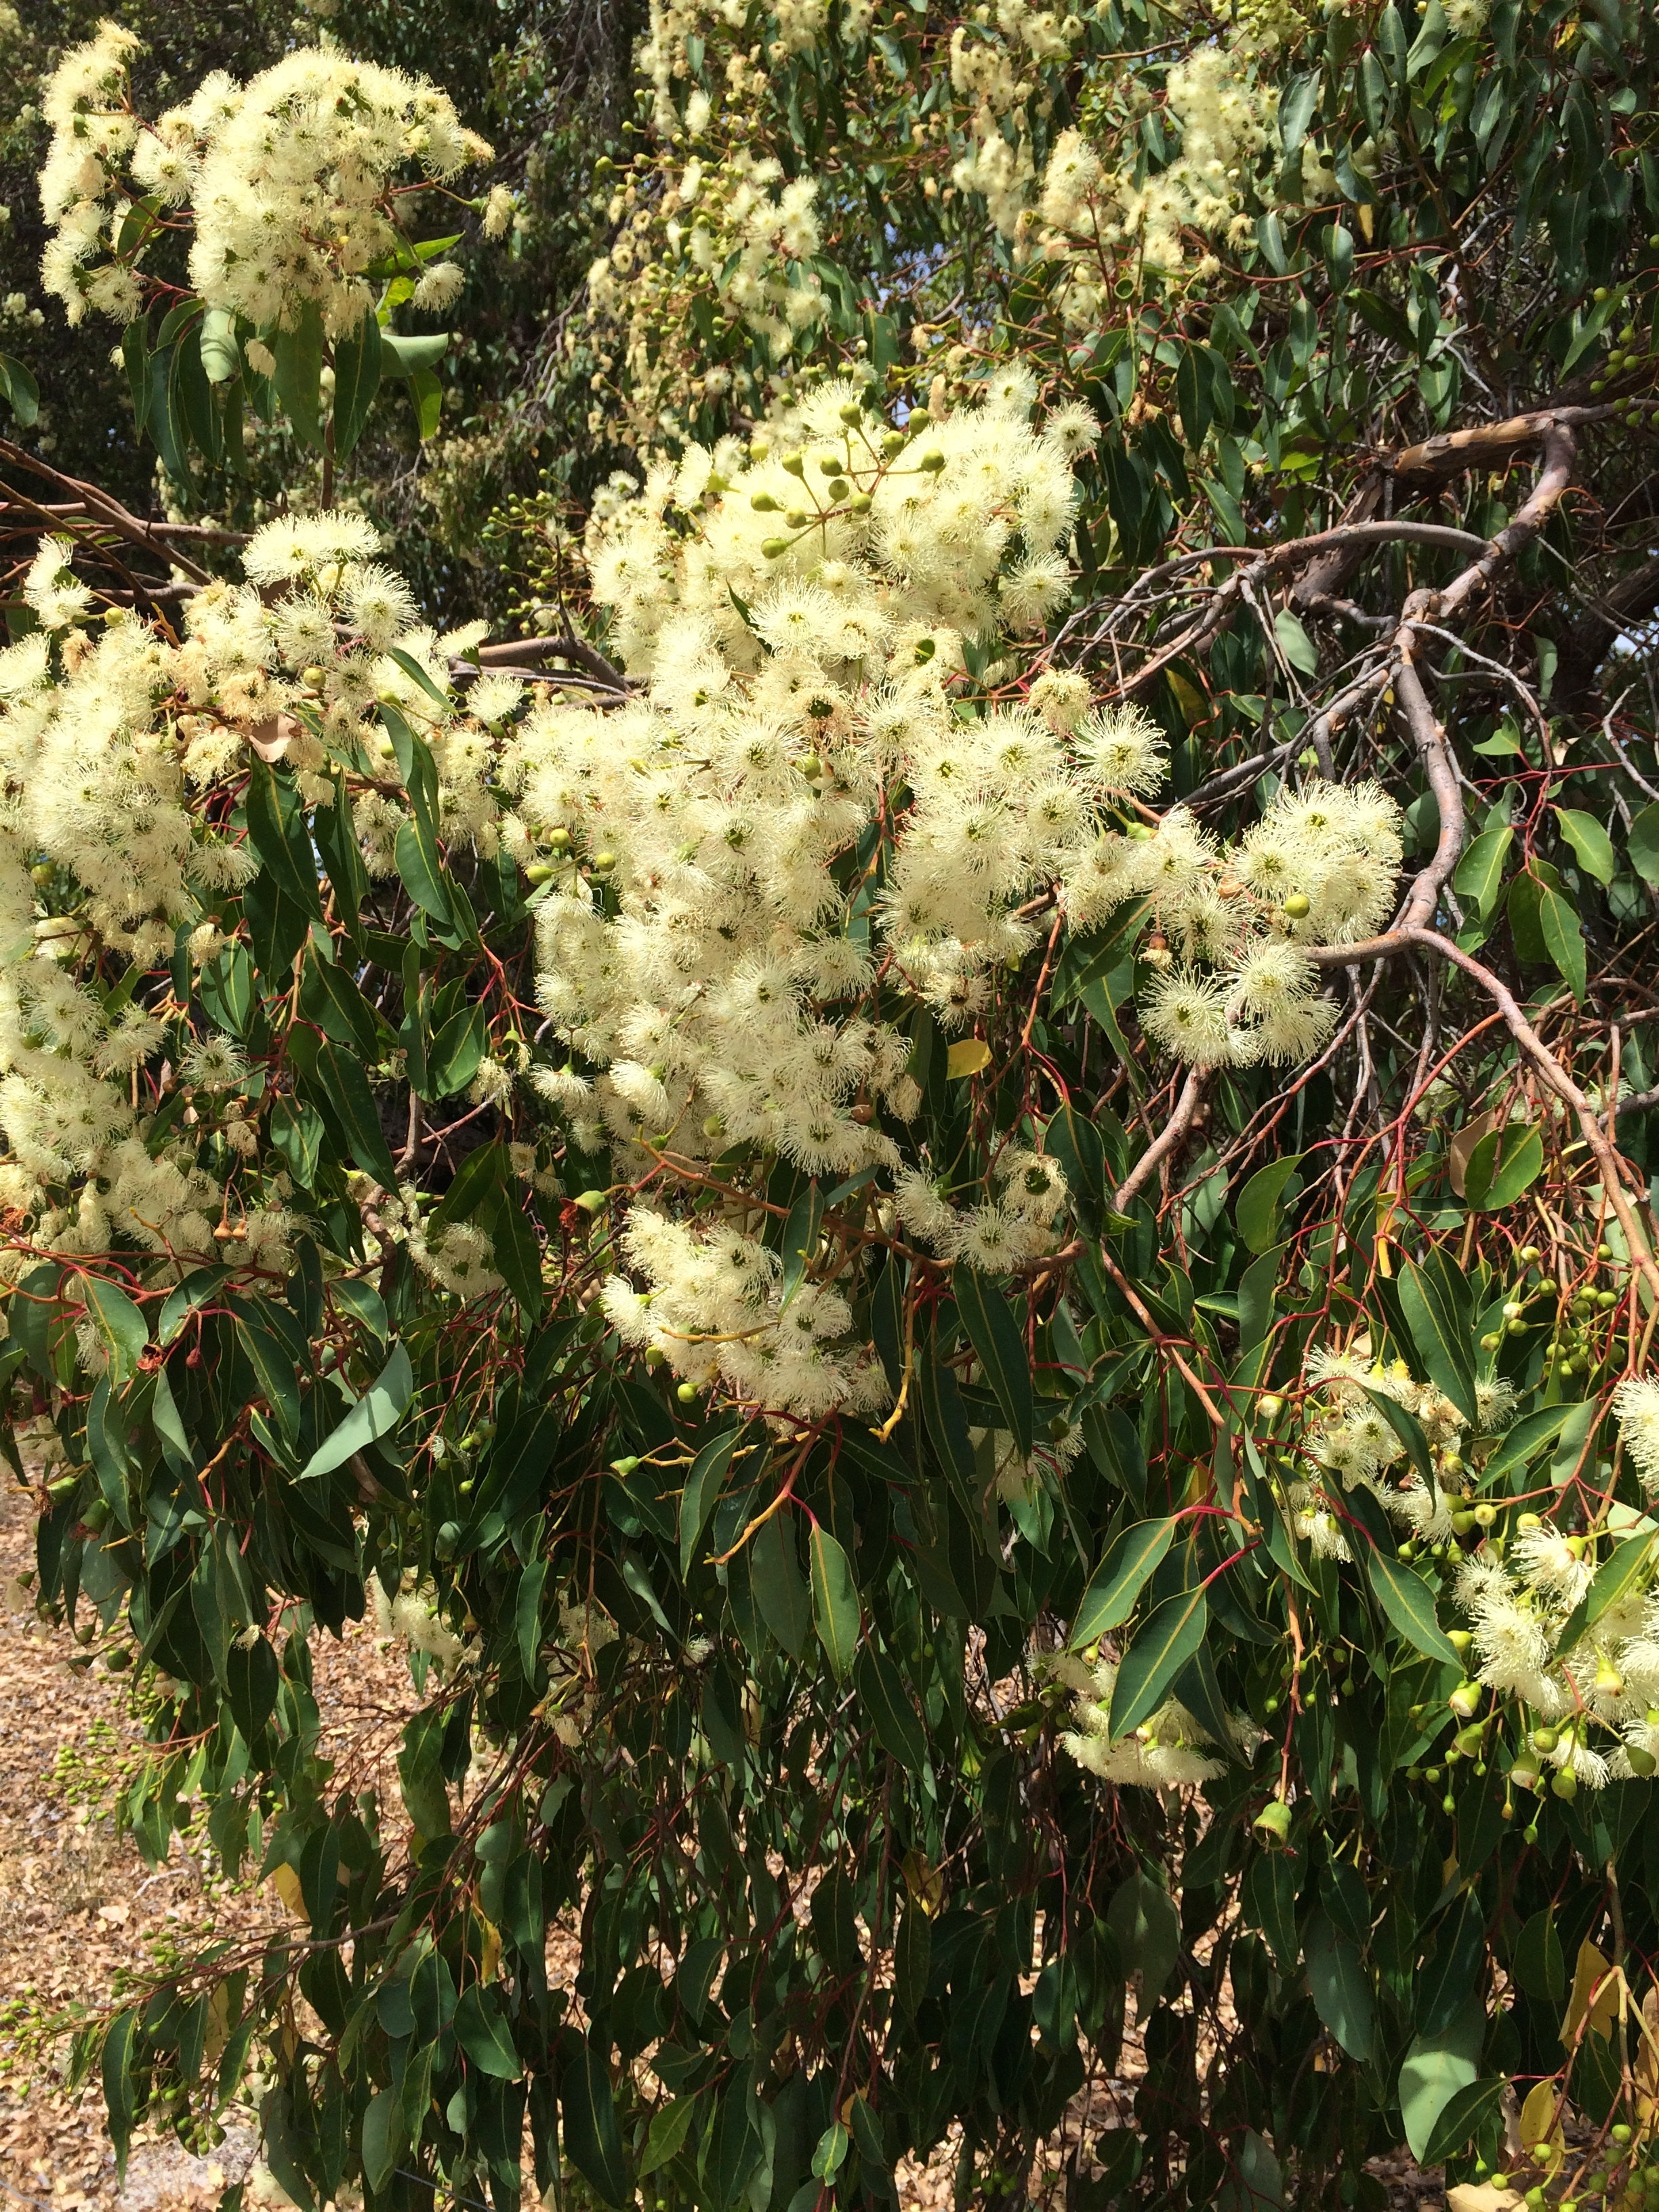 If the jarrah trees are flowering, it's too hot to ride!